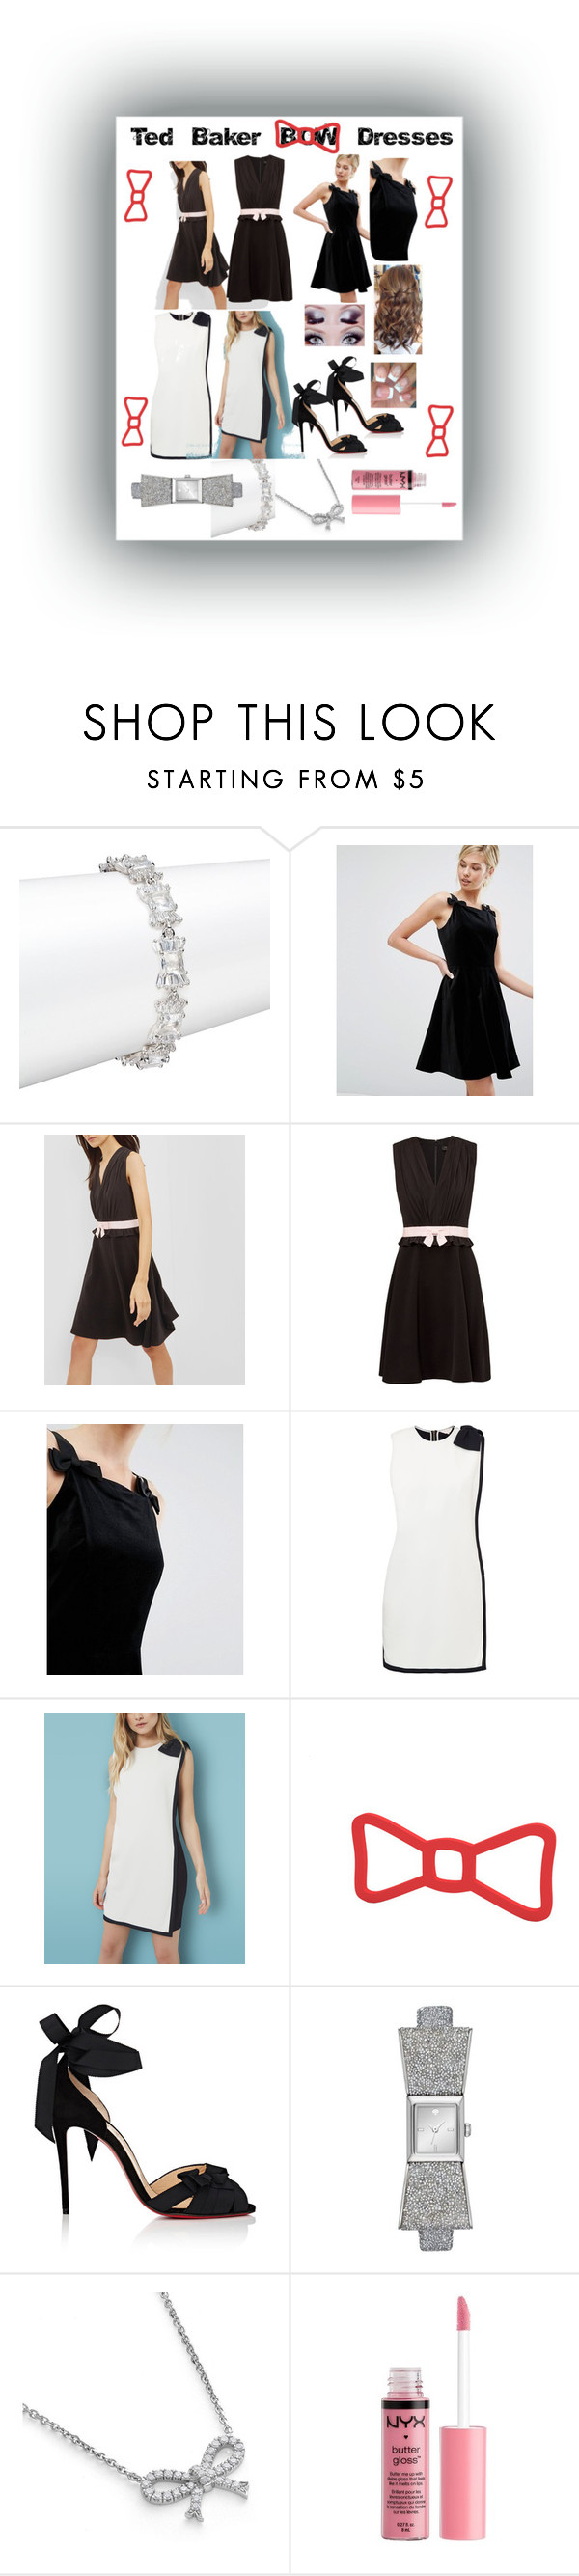 """All Tied Up Pretty!"" by snowflakeunique ❤ liked on Polyvore featuring Kate Spade, Ted Baker, Christian Louboutin and Charlotte Russe"